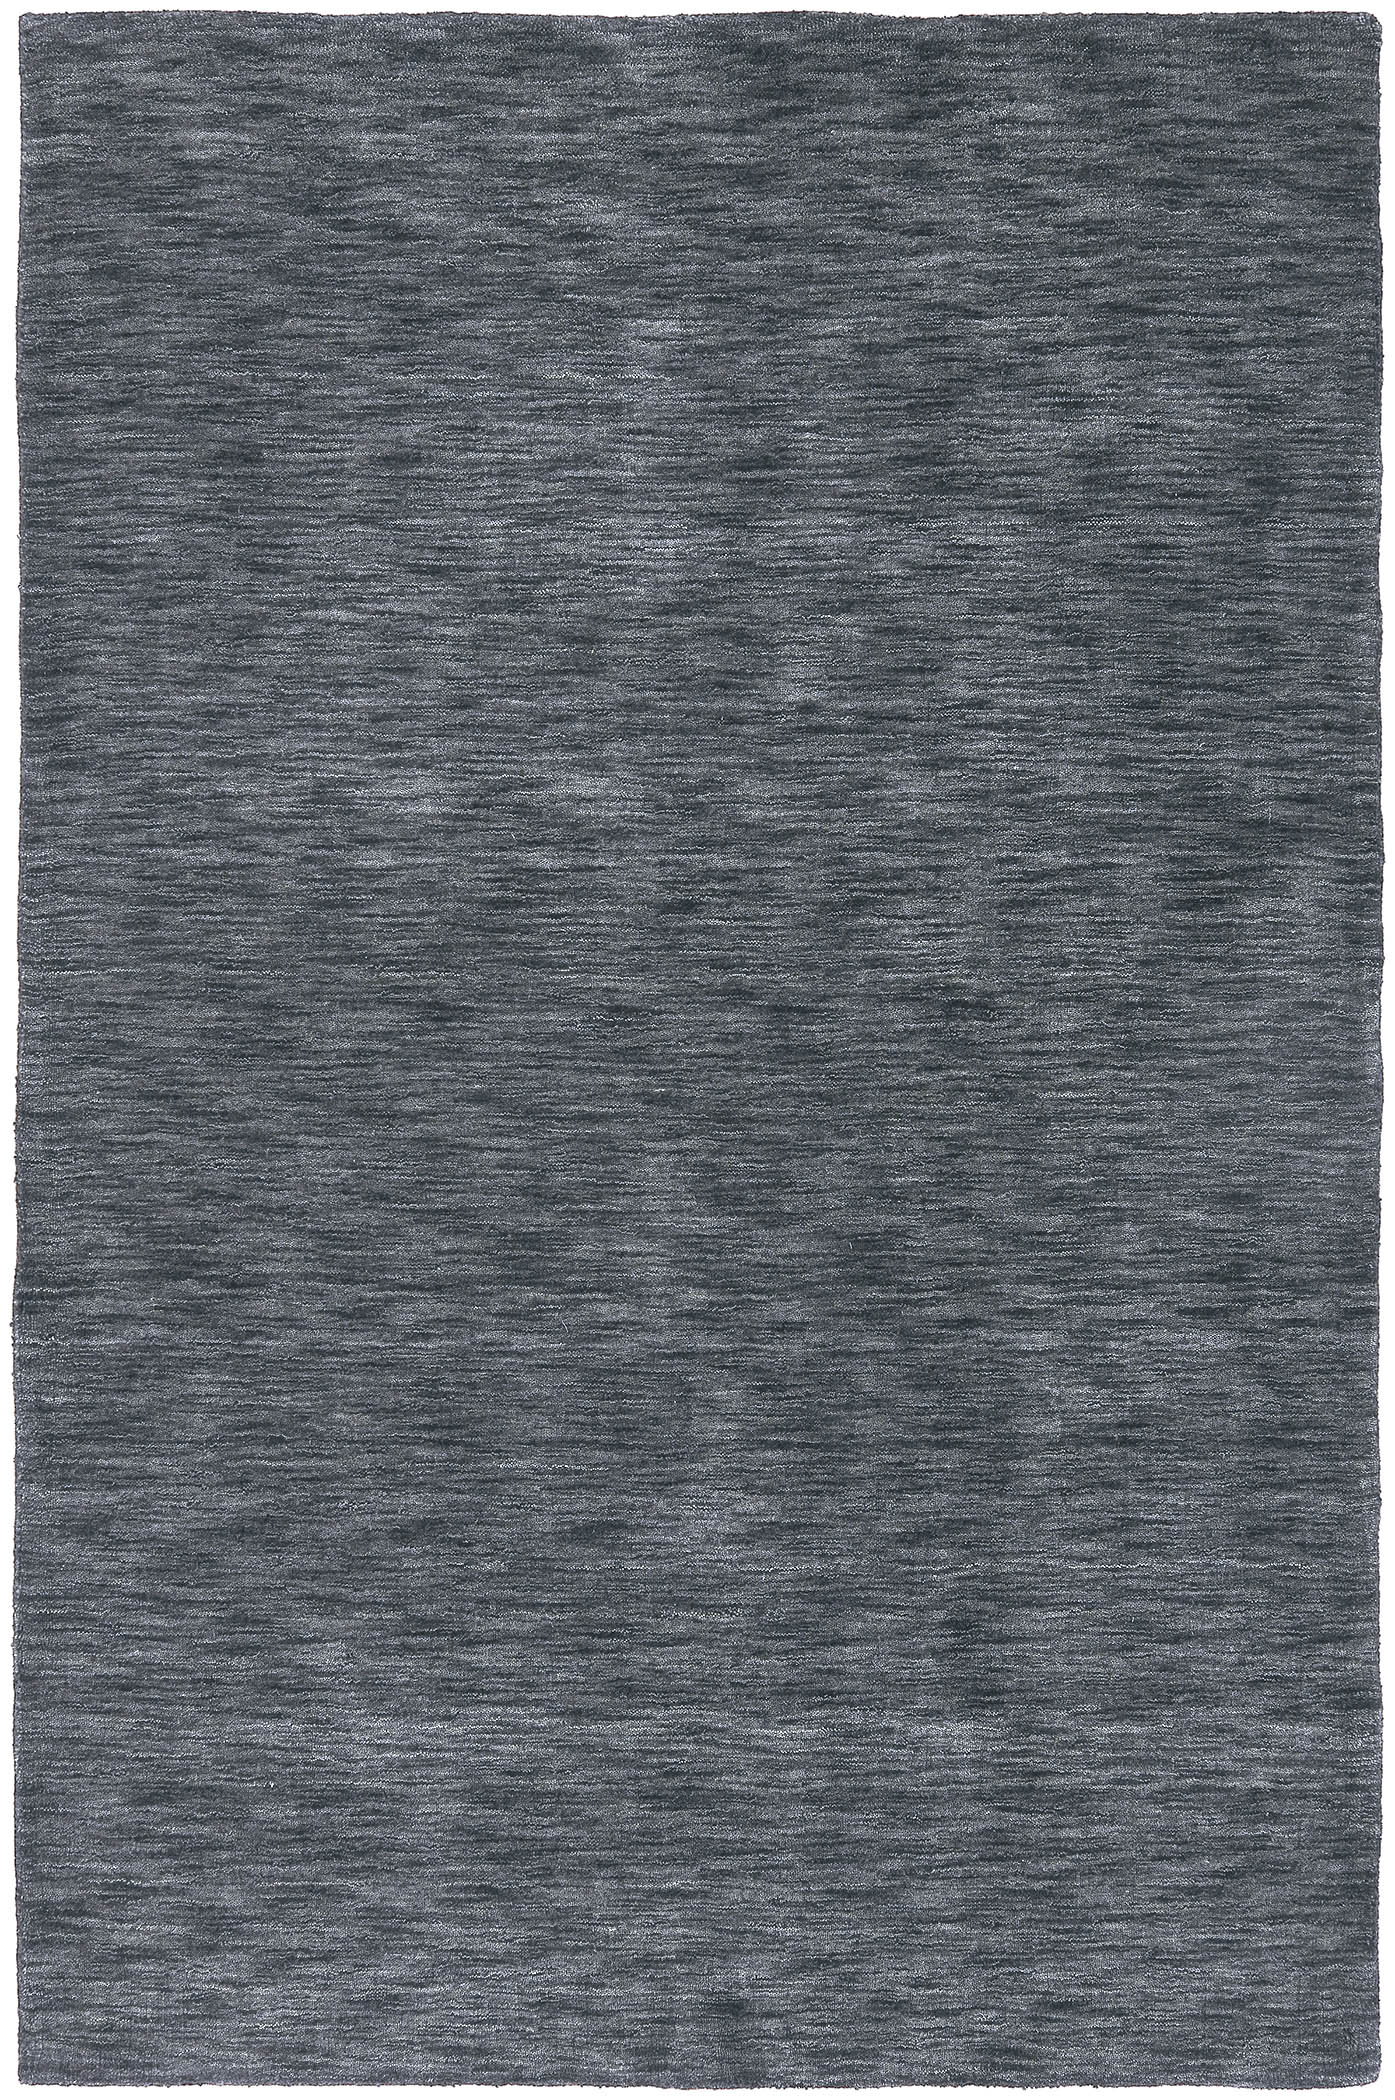 Renaissance 4500 38 Charcoal Rug by Kaleen